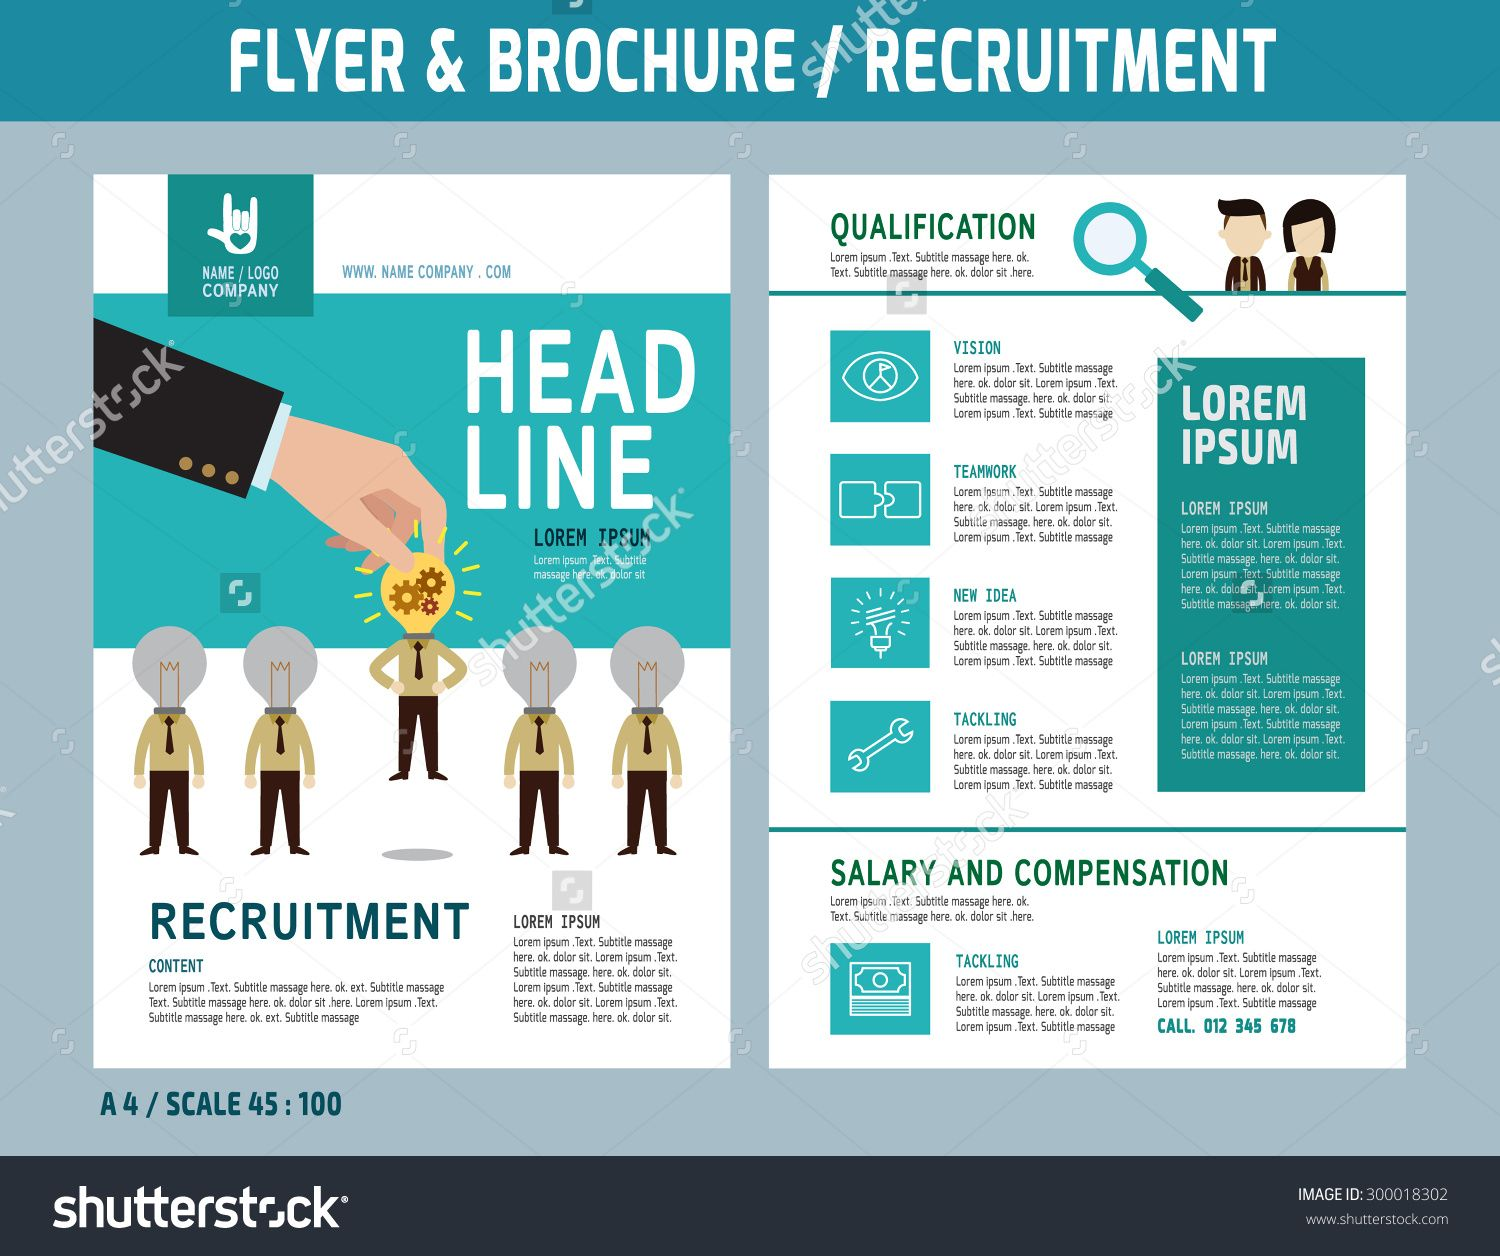 Recruitment Flyer Design Vector Template In A4 Size. Brochure And ...